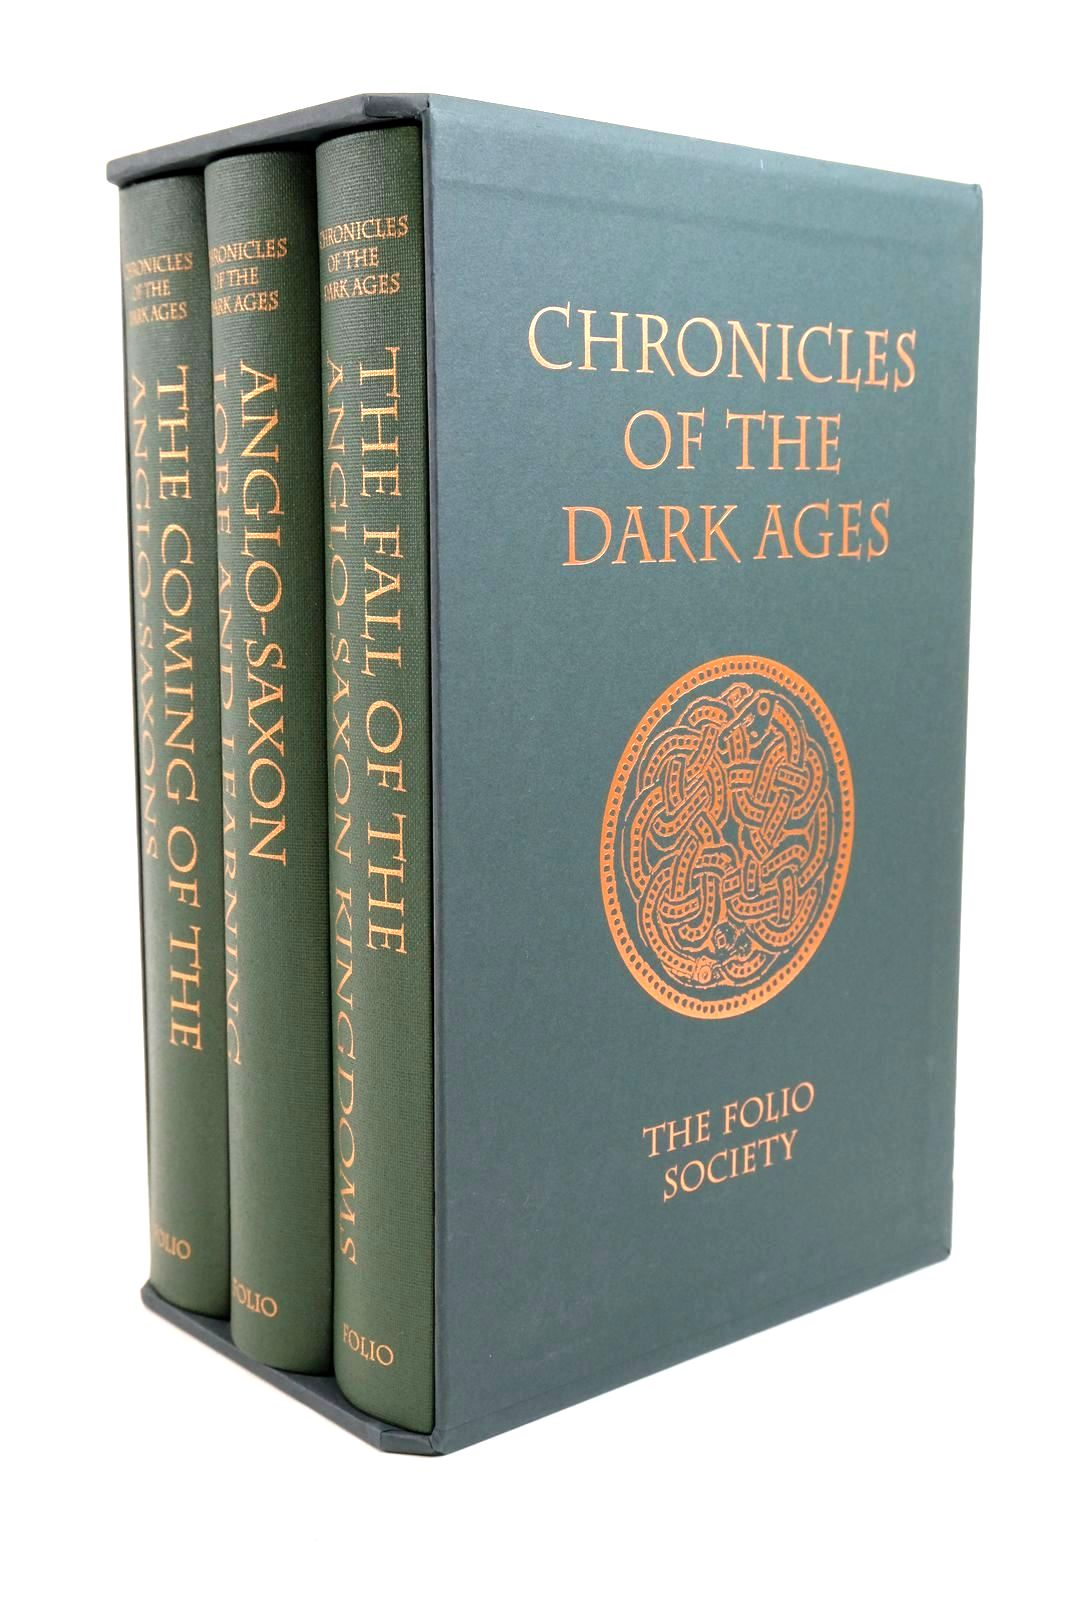 Photo of CHRONICLES OF THE DARK AGES (3 VOLUMES) written by Barber, Richard published by Folio Society (STOCK CODE: 1321319)  for sale by Stella & Rose's Books